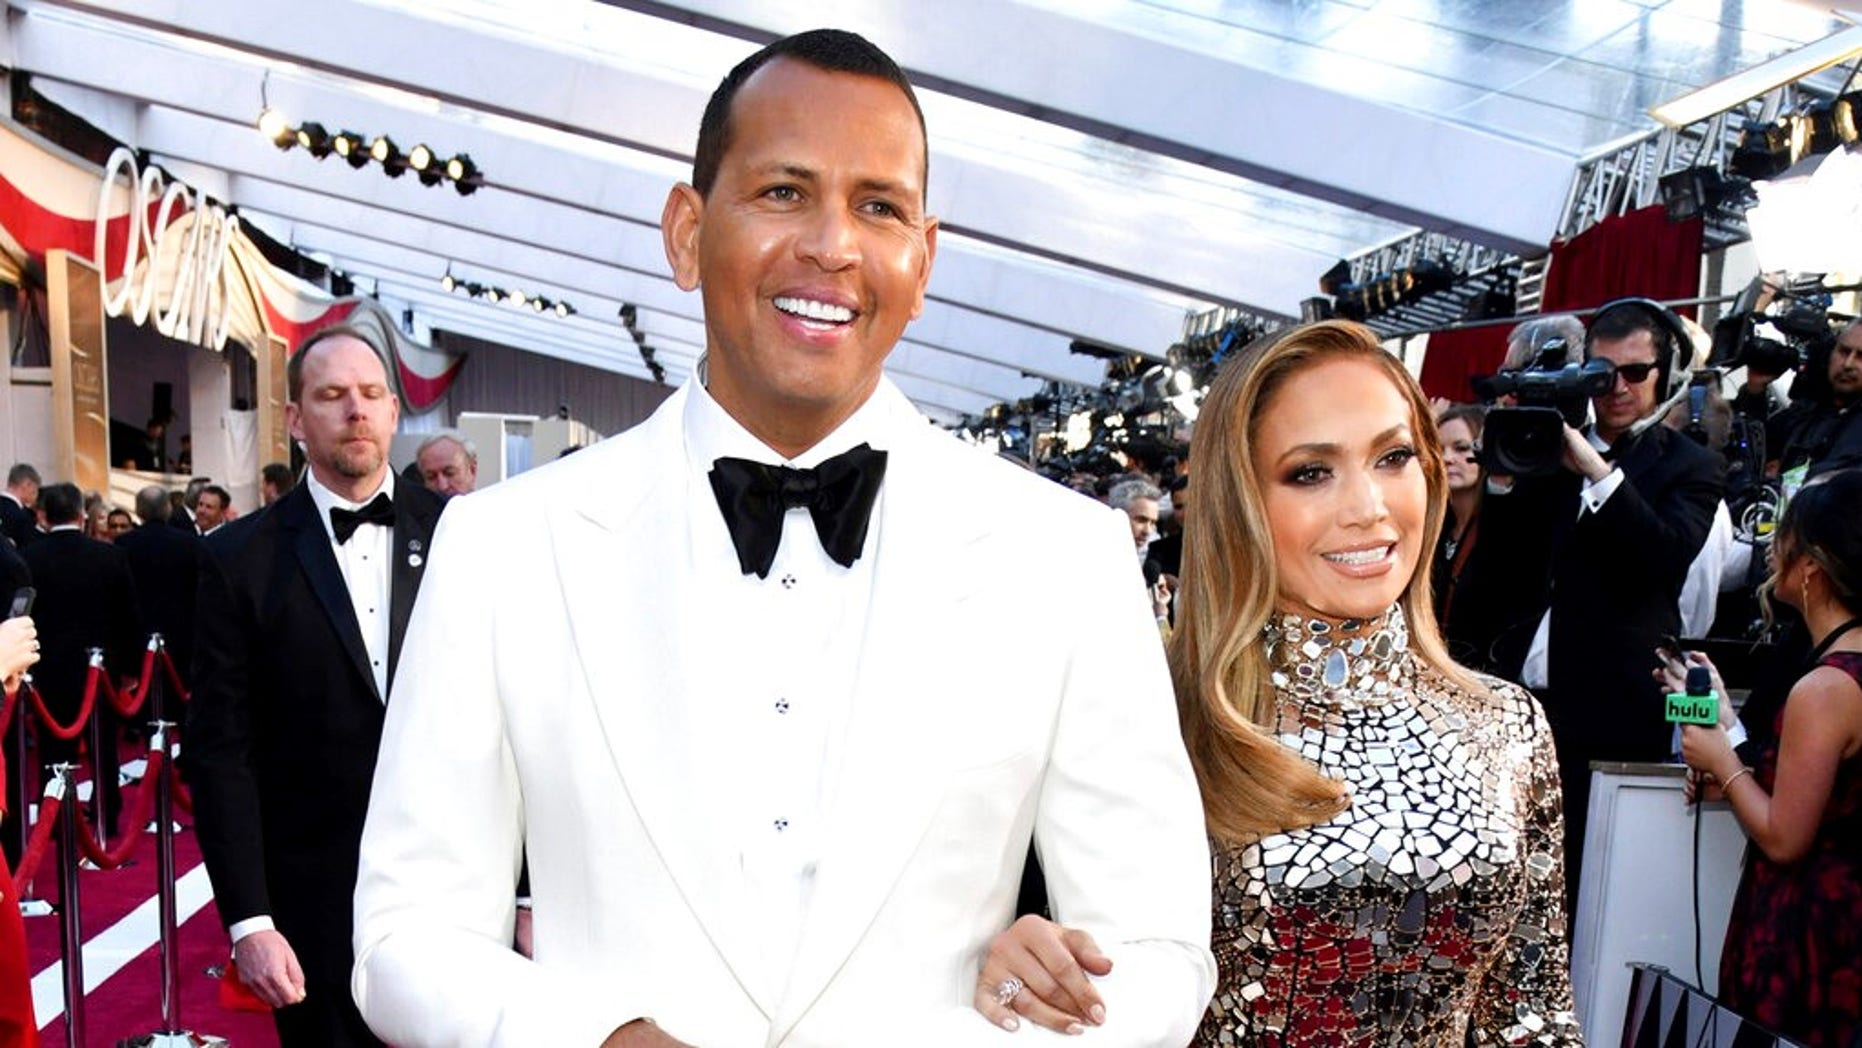 Alex Rodriguez and Jennifer Lopez arrive at the Oscars at the Dolby Theatre in Los Angeles on Feb. 24, 2019.